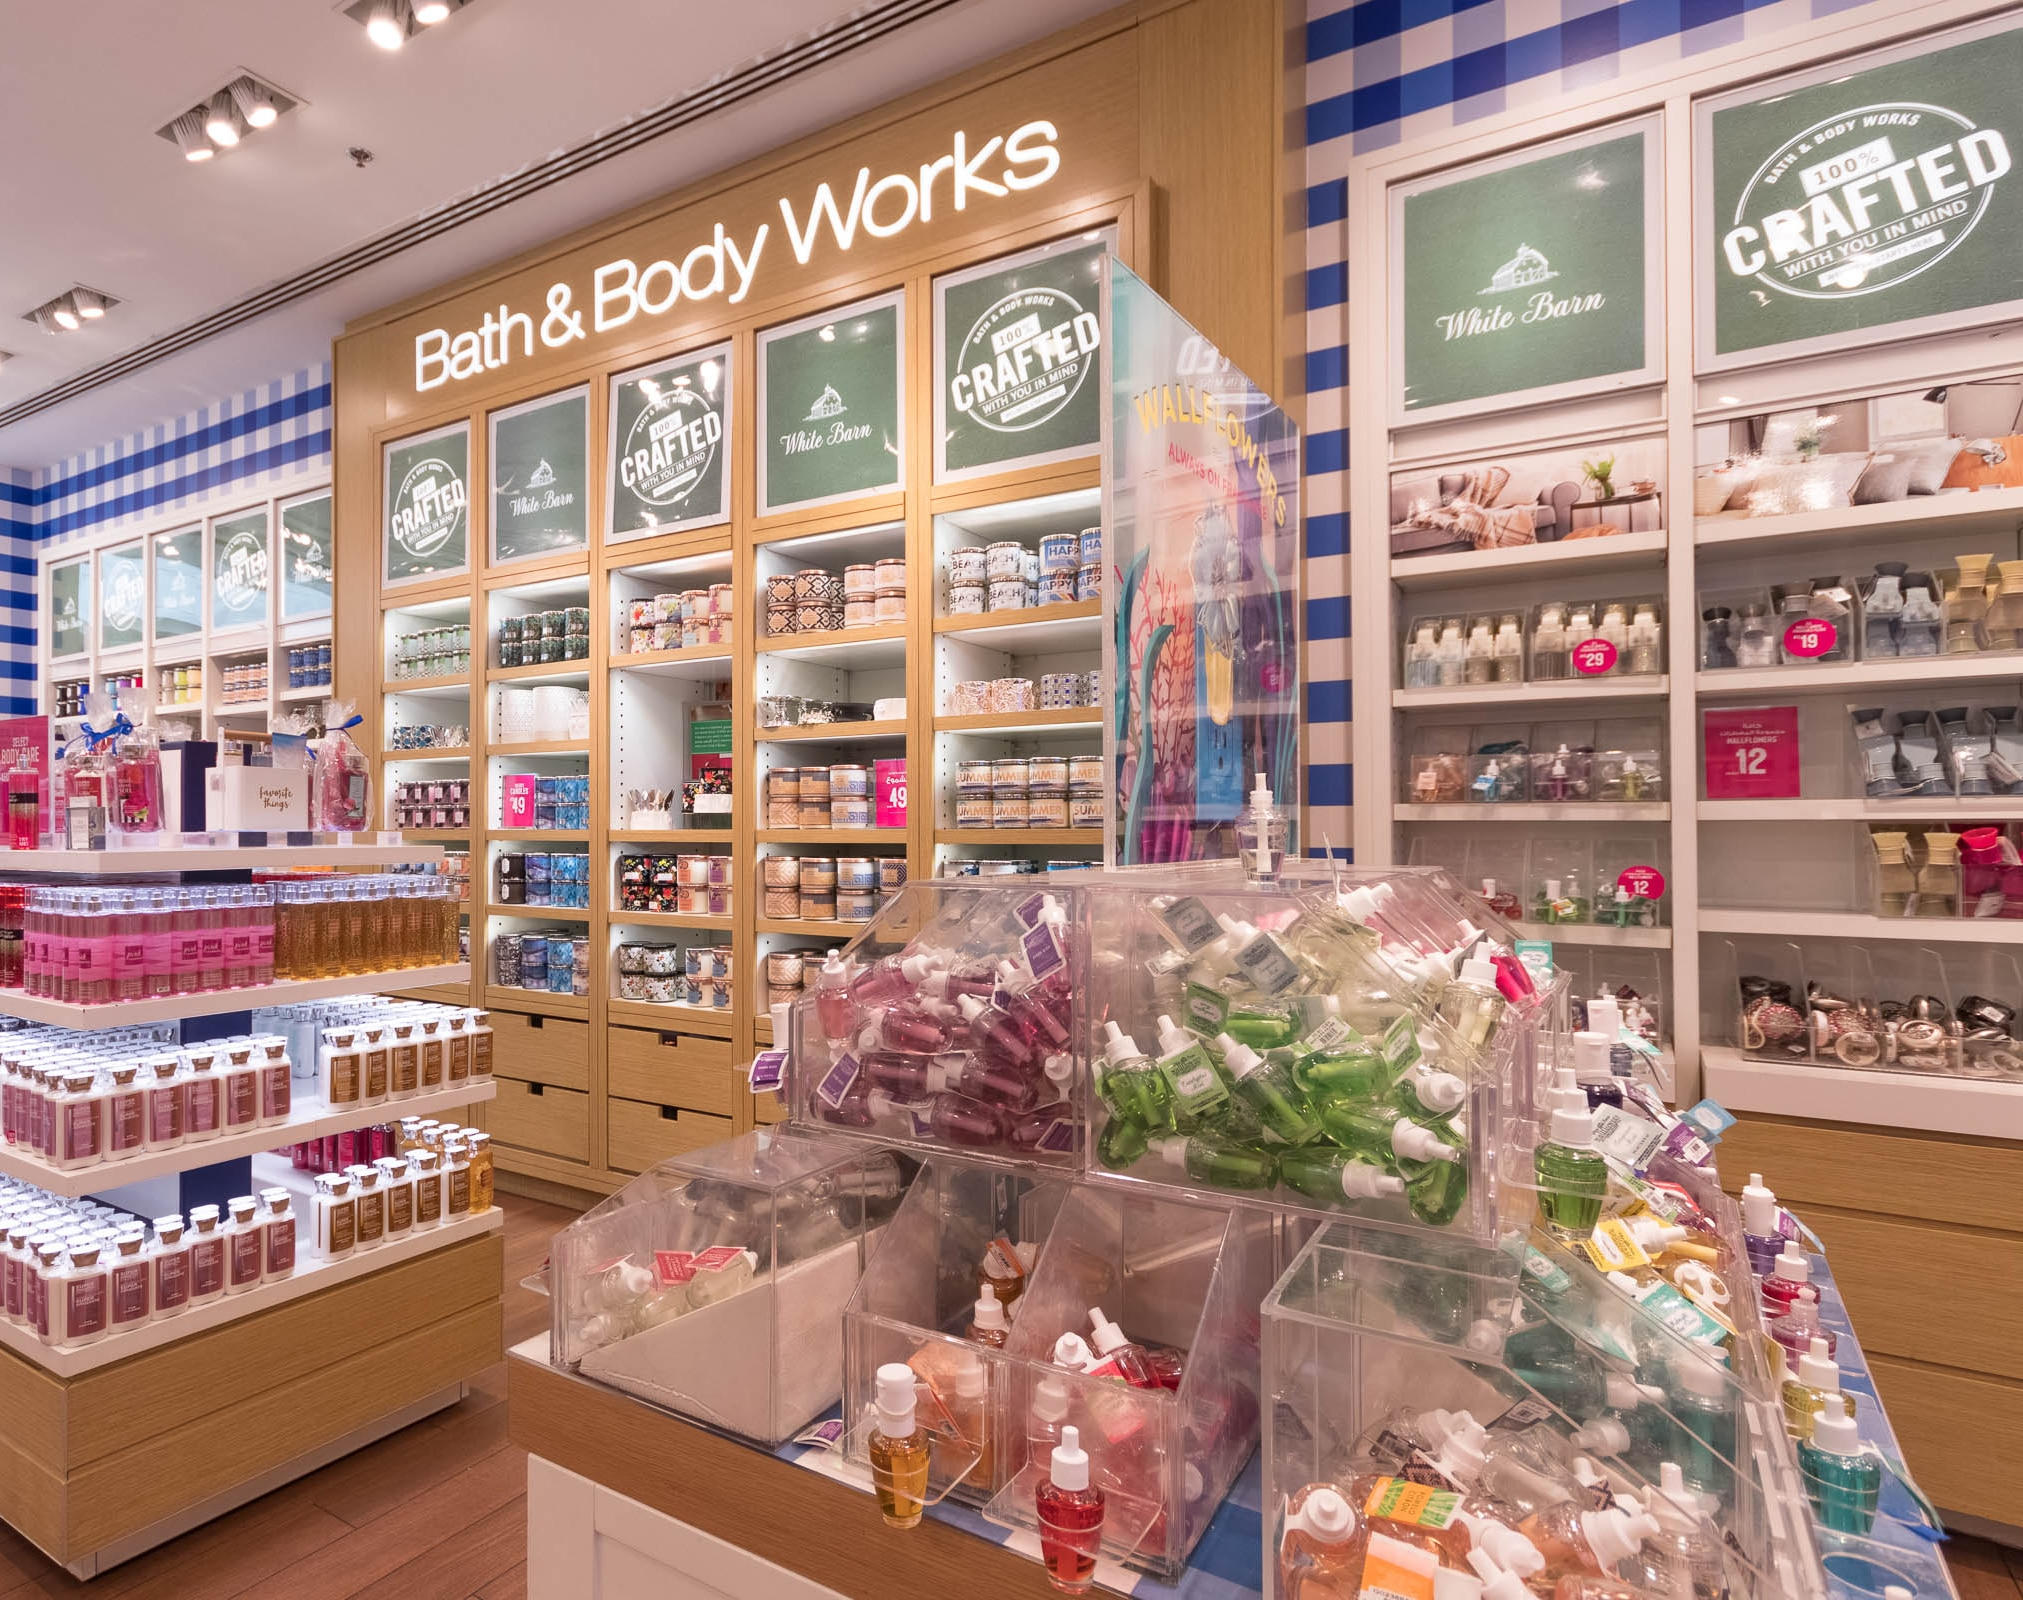 Bath & Body Works Image2